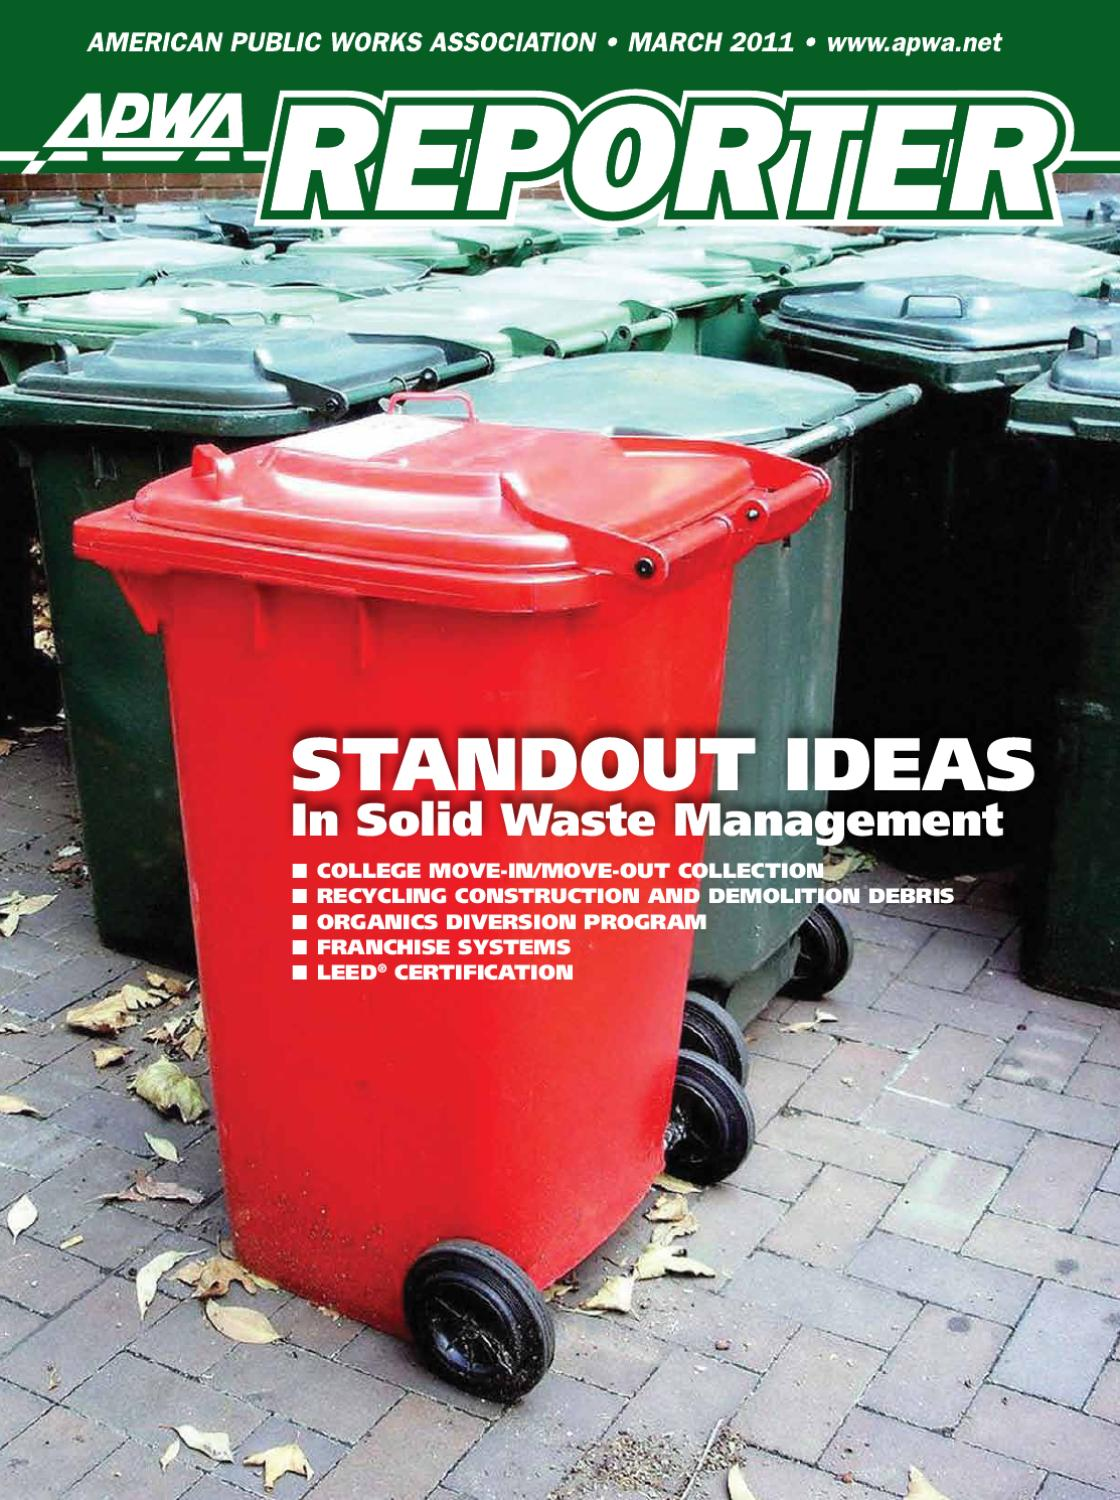 Apwa Reporter March 2011 Issue By American Public Works Association Control Panel Layout And Wiring Best Practices Harold On Controls Issuu